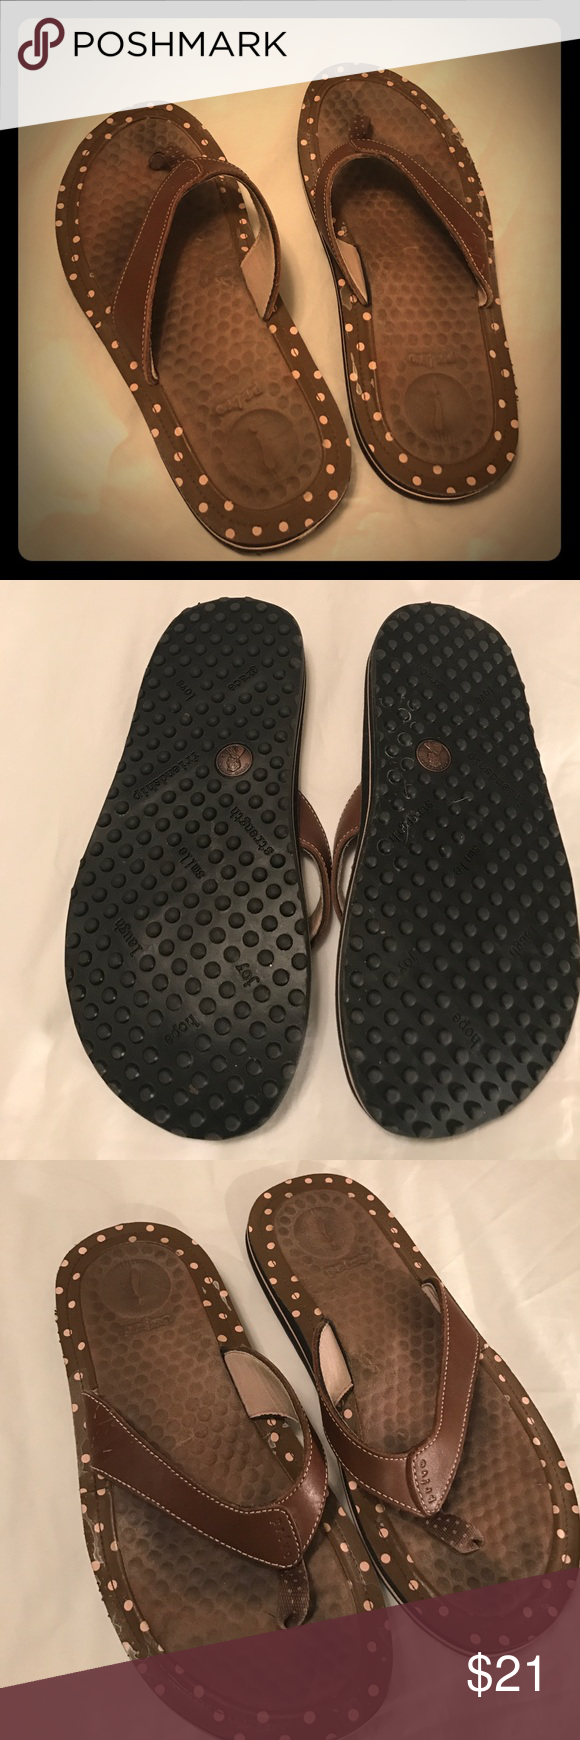 4bebbc3d2 Privo Flip Flops - Leather Uppers Brand Privo. Size 10M. Good condition.  Leather Uppers. Brown with pastel pink polka dots. Non-smoking home. Privo  Shoes ...